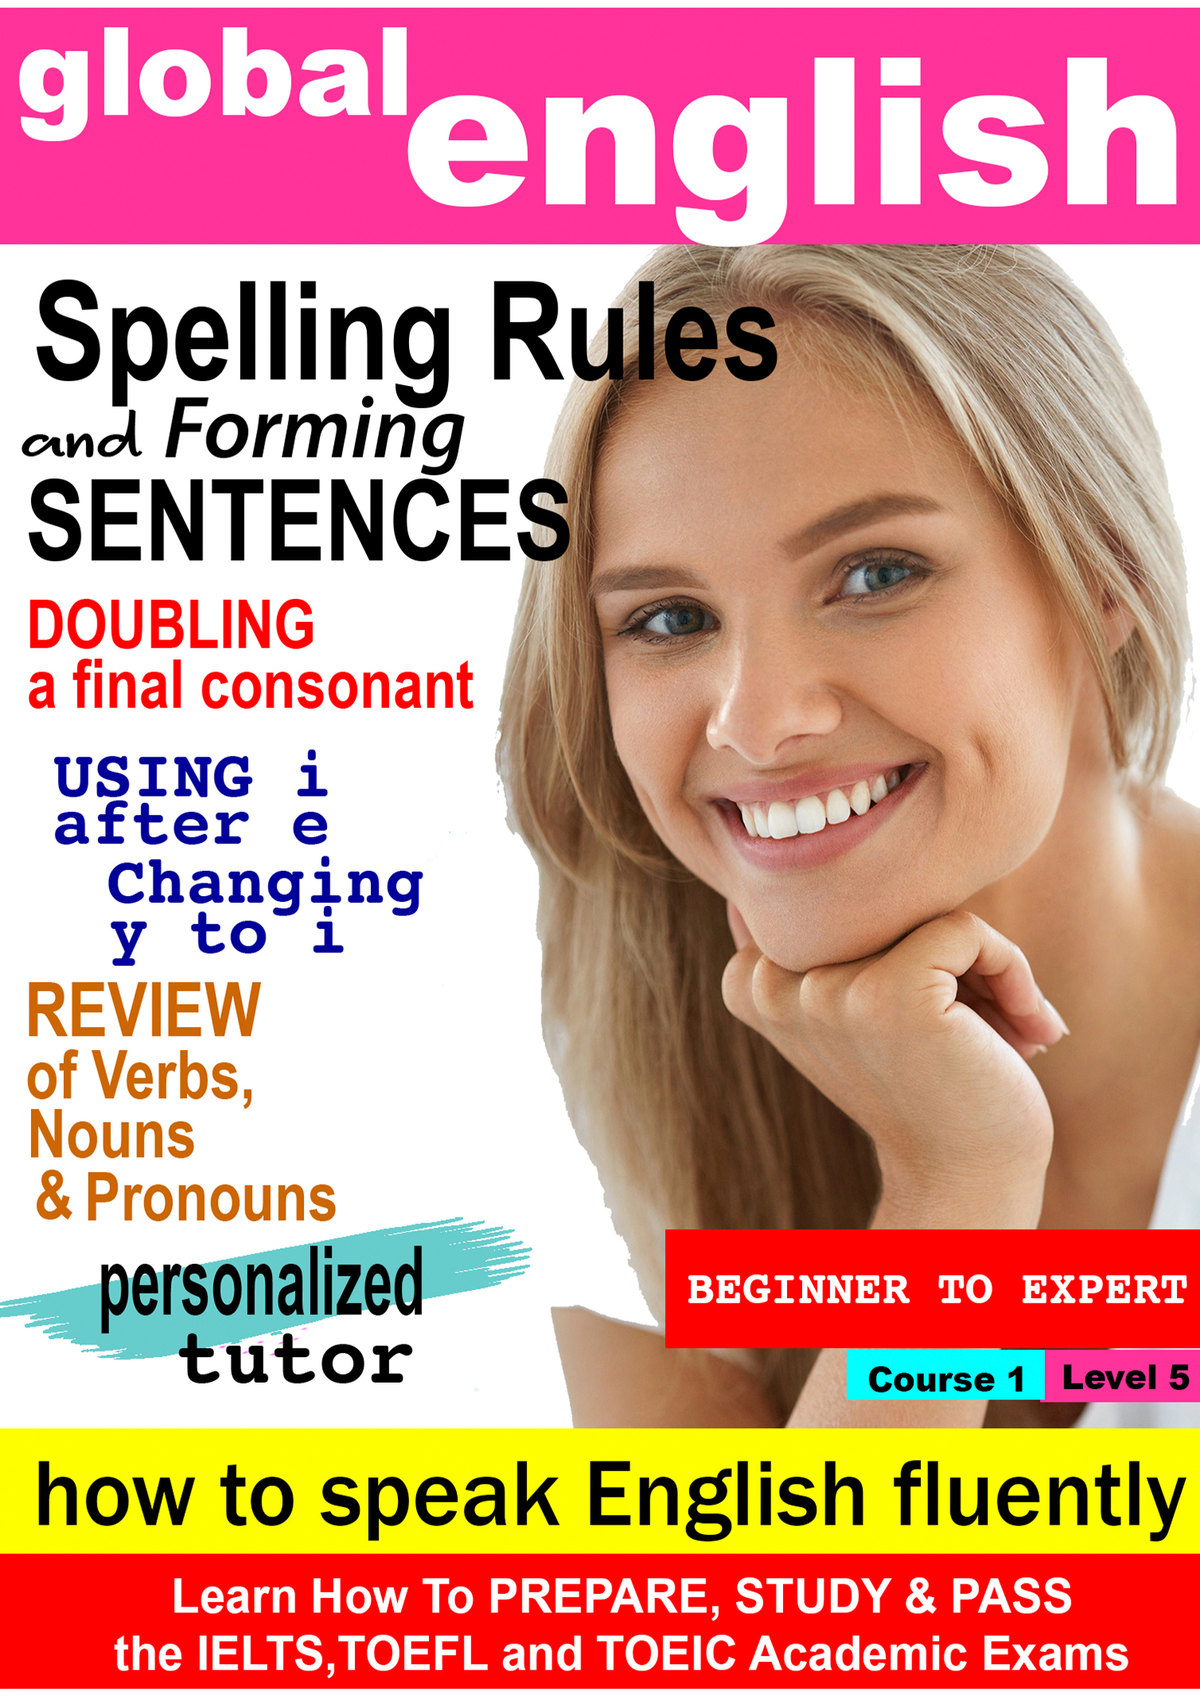 K7005 - Spelling Rules, Review of Verbs, Nouns, Pronouns, Upper/lower case, Identifiers, Present simple & continous tense, Vowels & Consonants, Prepositions of Place, Forming Sentences